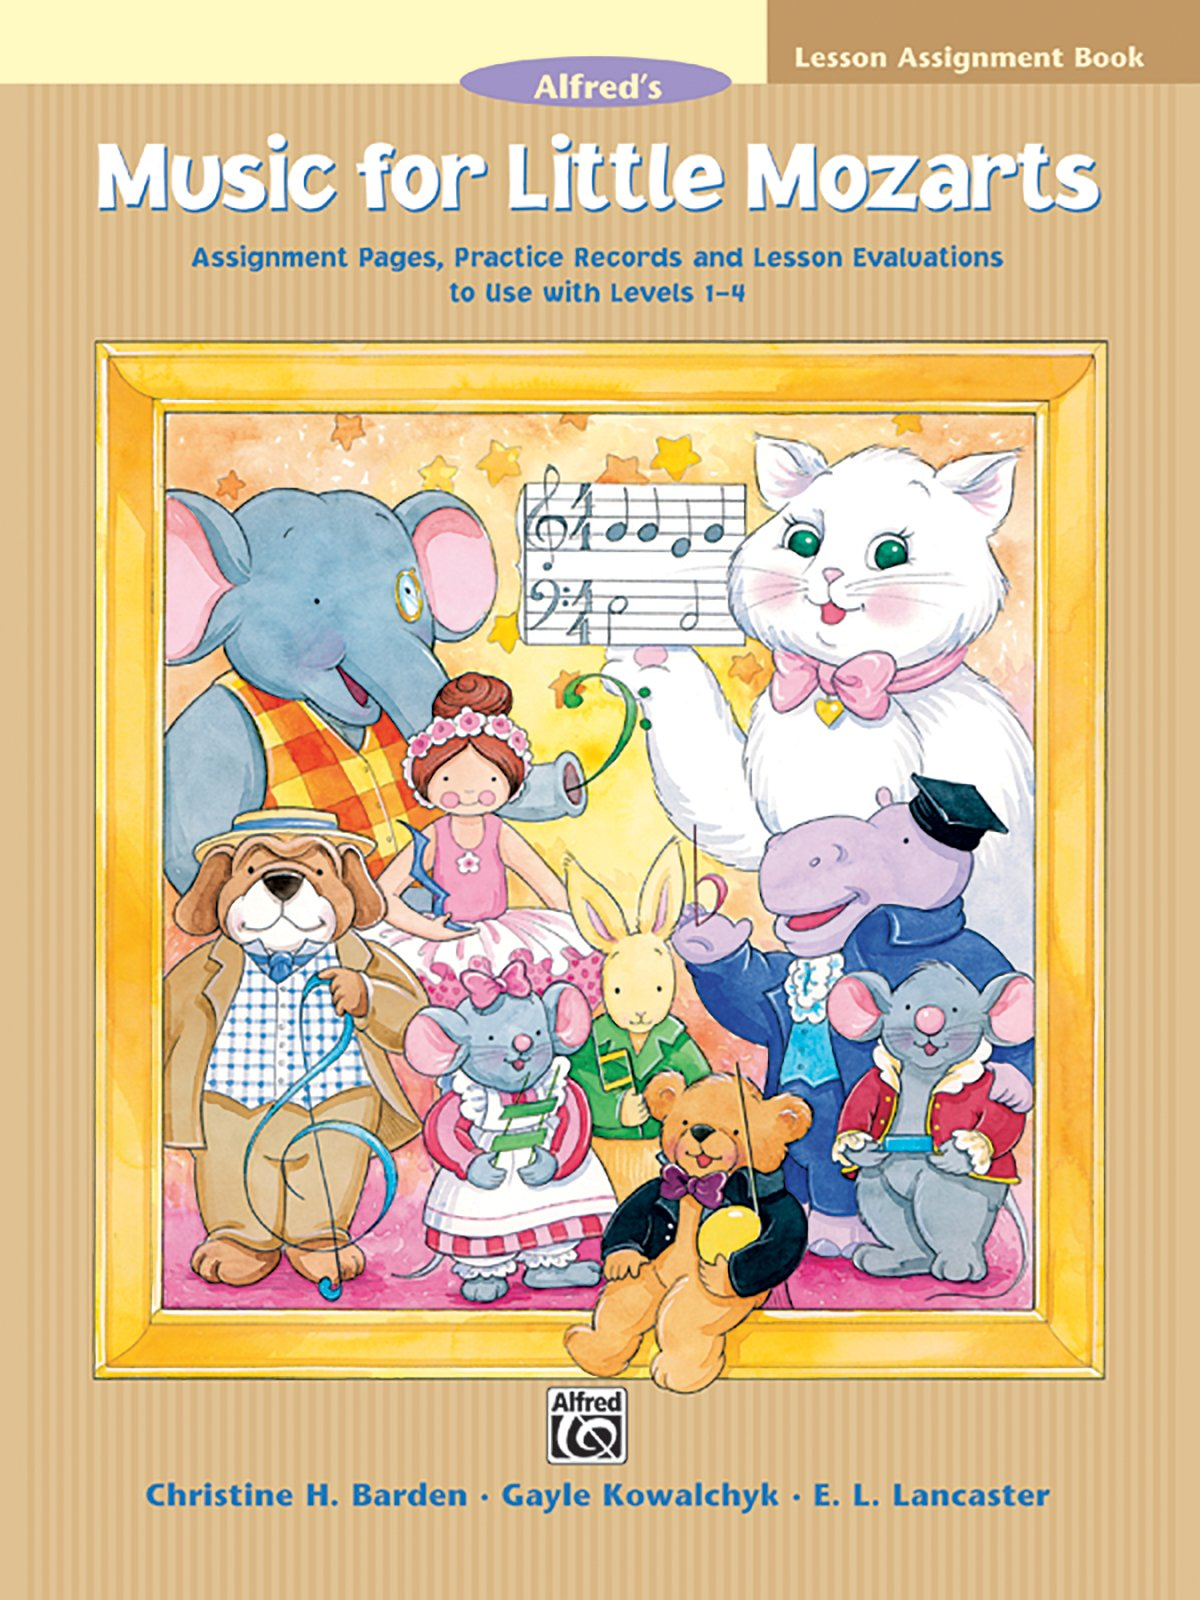 Music for Little Mozarts Lesson Assignment Book: Assignment Pages, Practice Records and Lesson Evaluations to Use with Levels 1--4 ebook